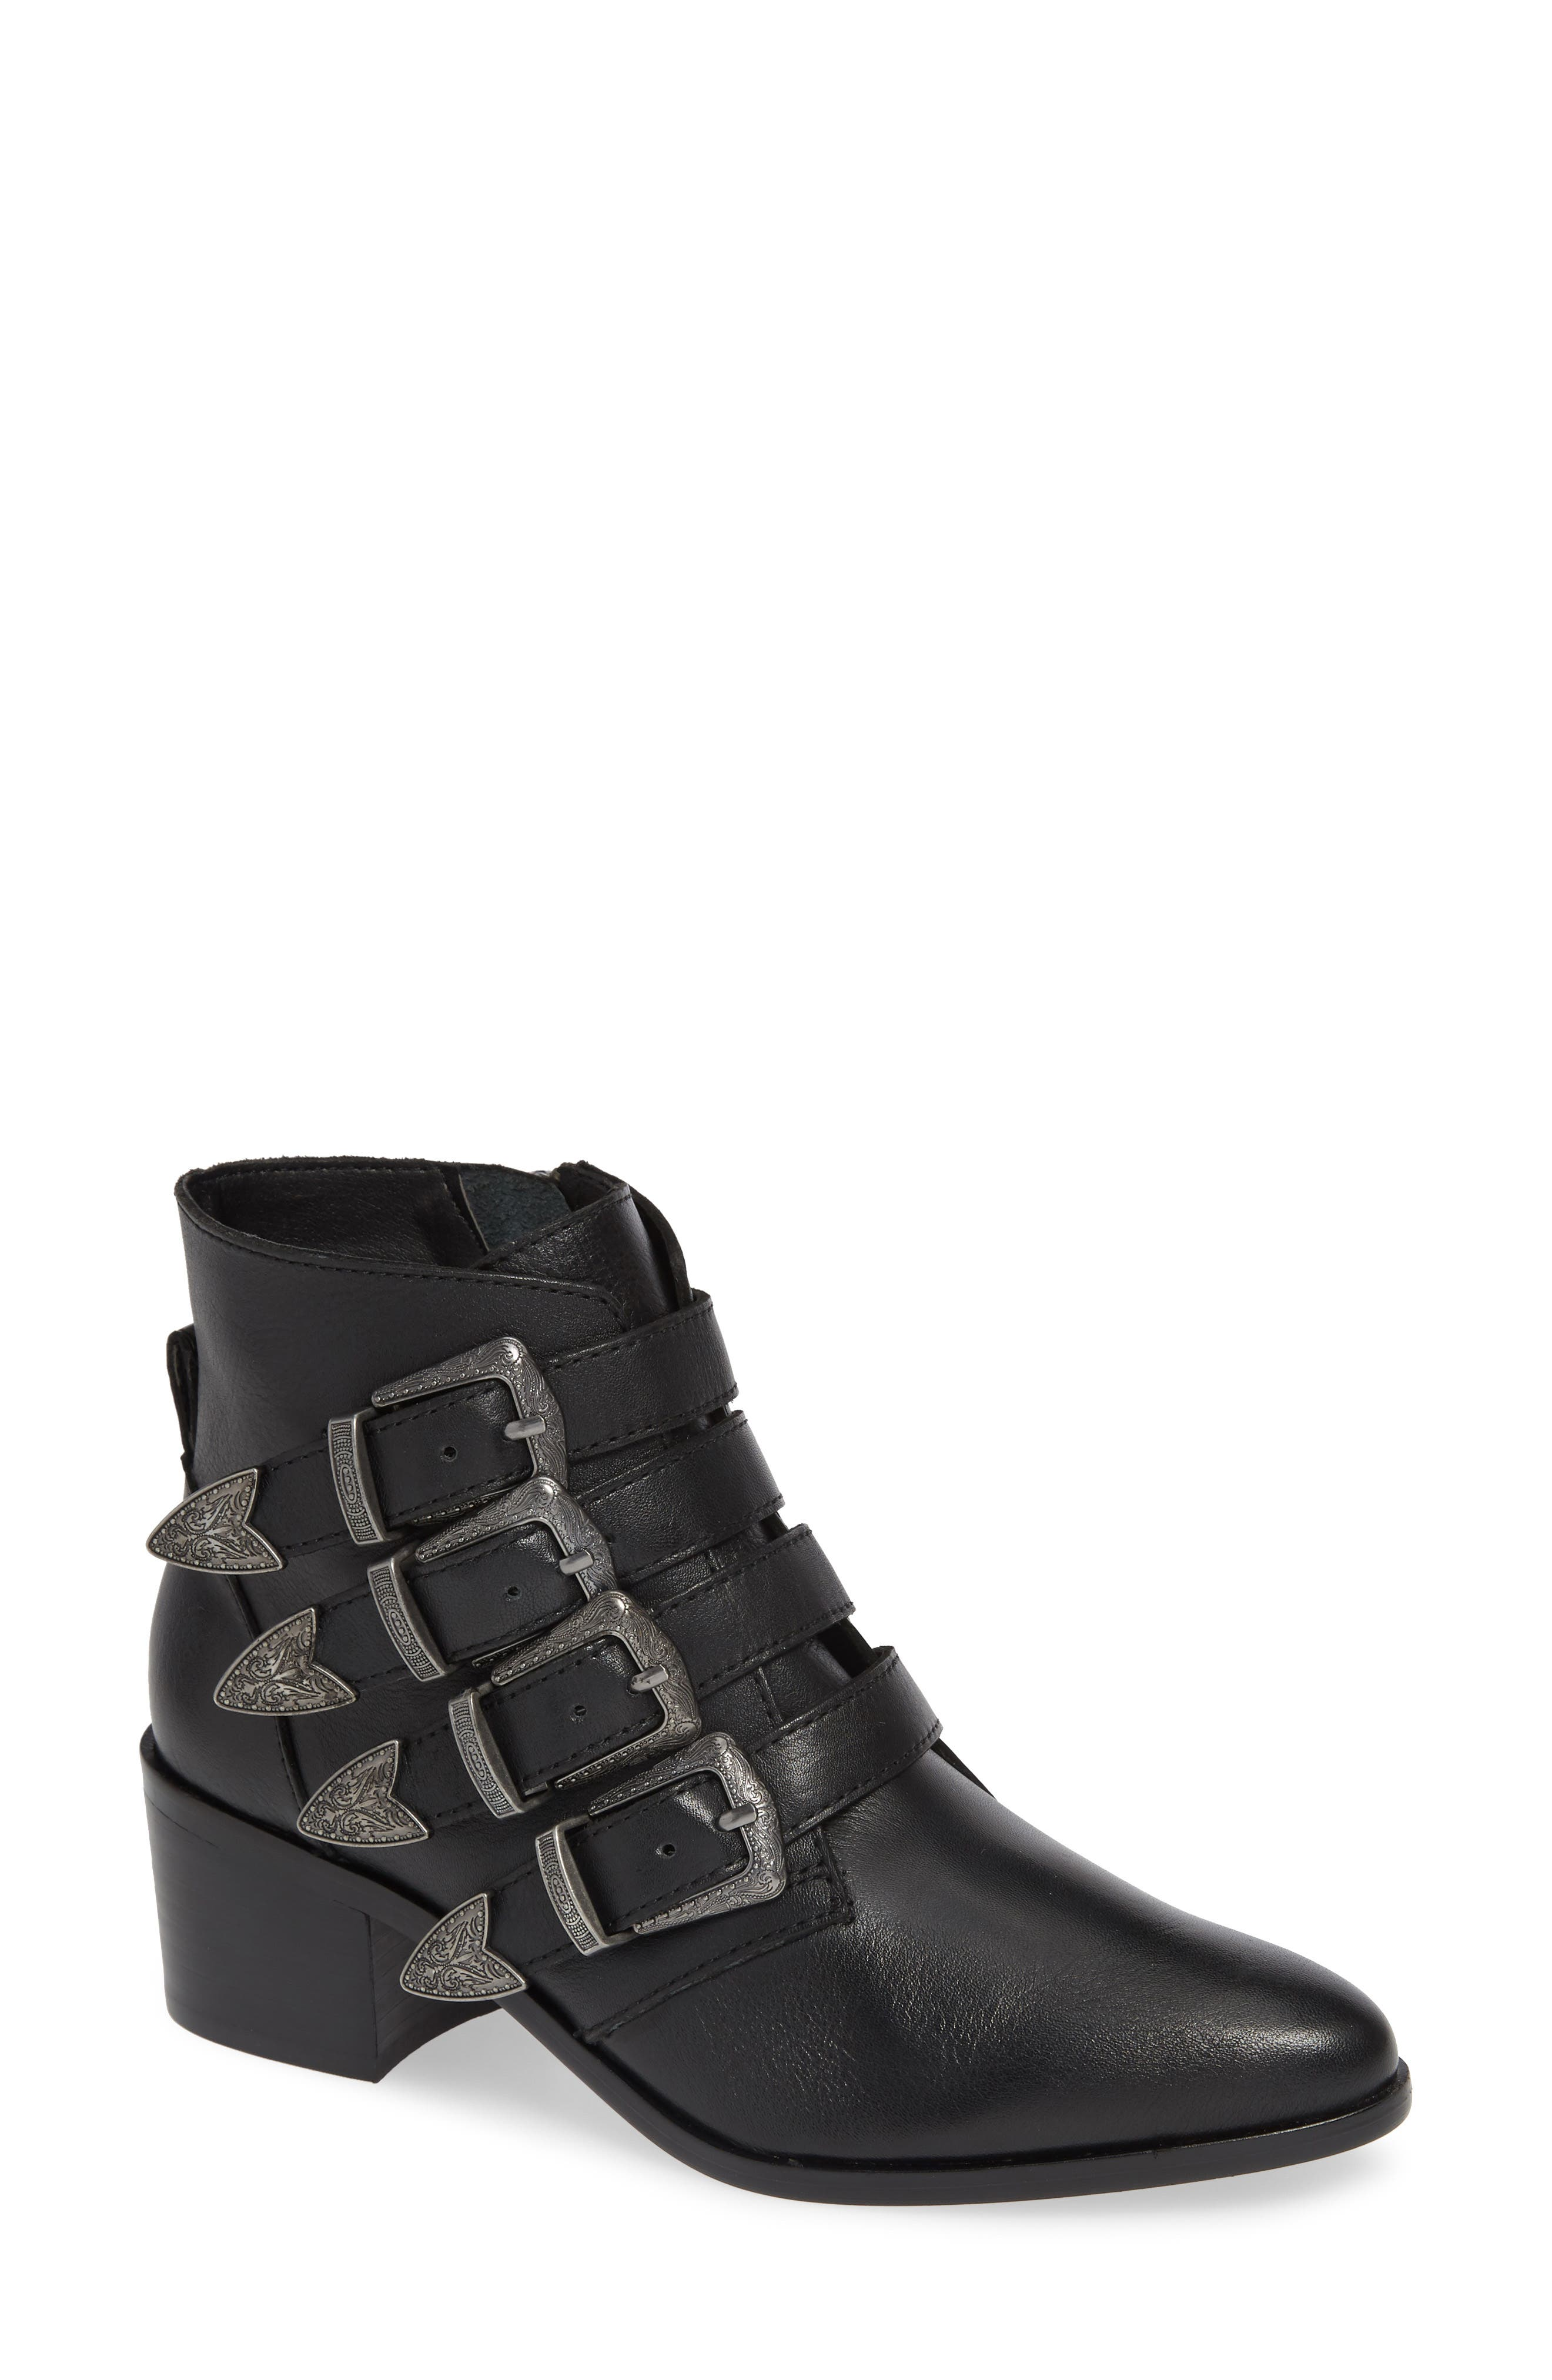 Billey Buckle Bootie,                             Main thumbnail 1, color,                             BLACK LEATHER